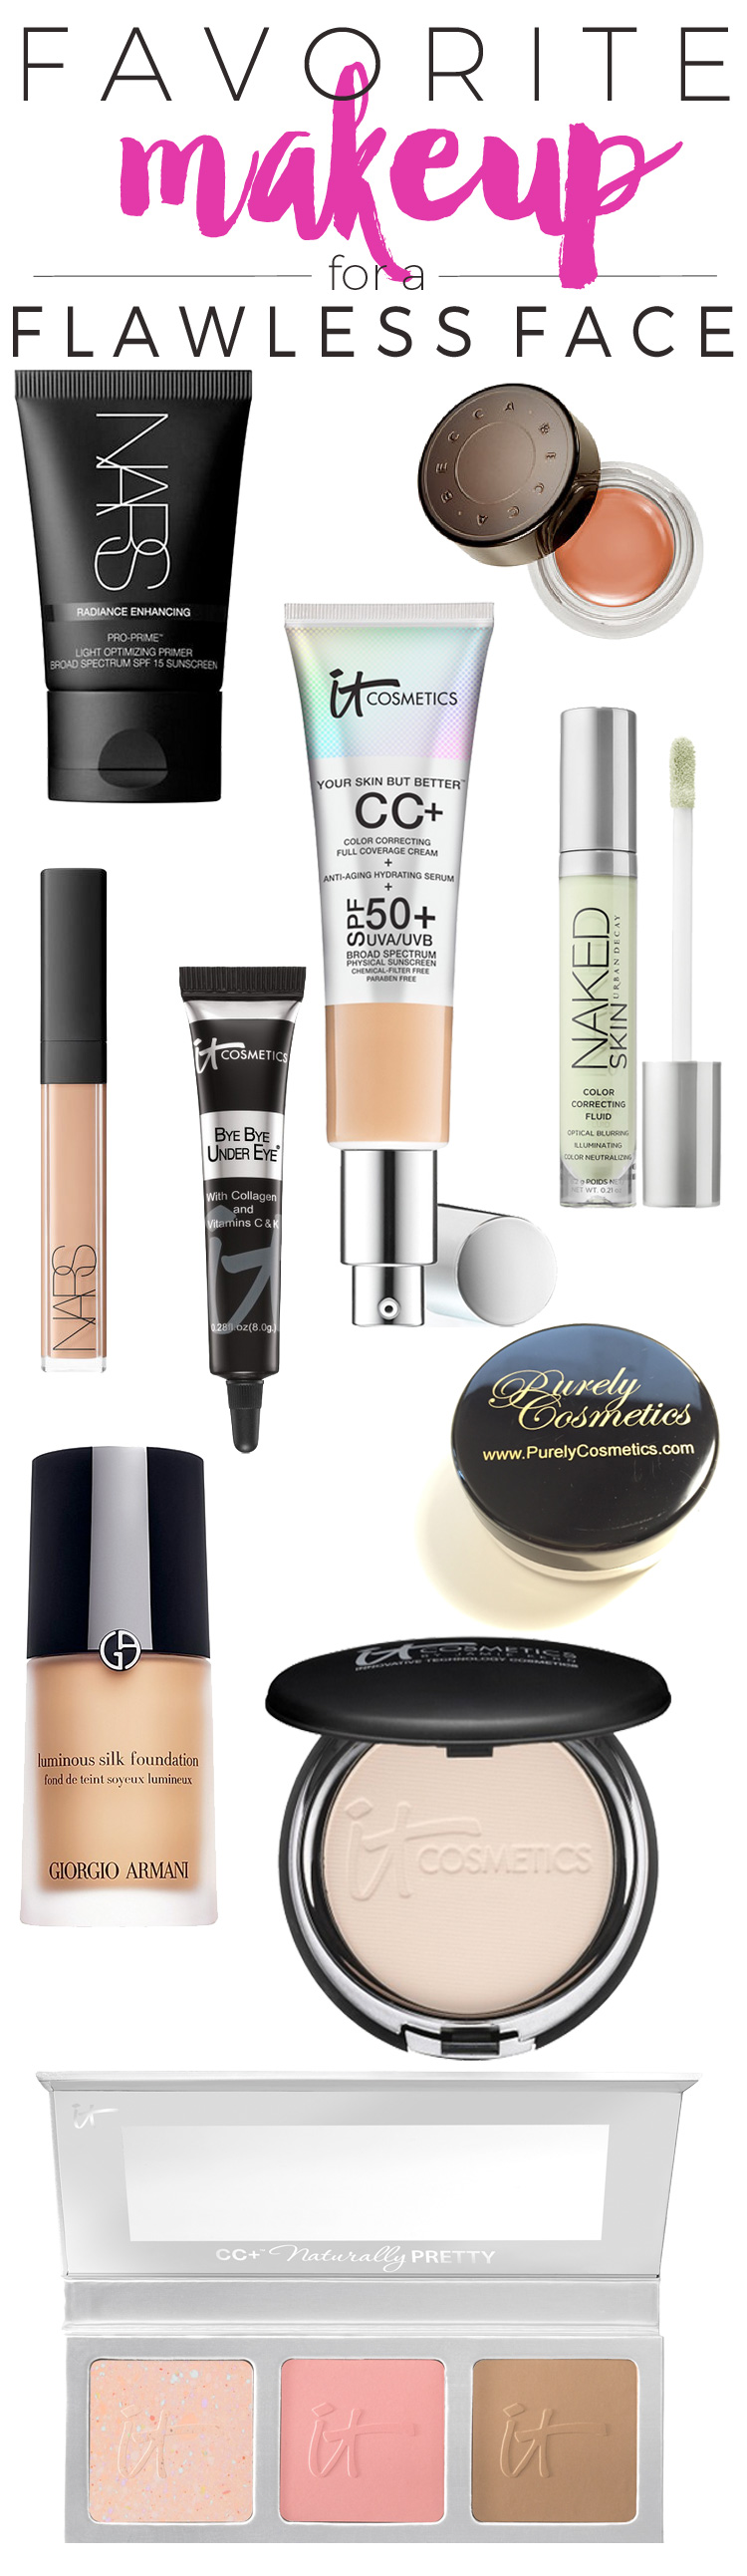 My 10 Favorite Products for a Flawless Face